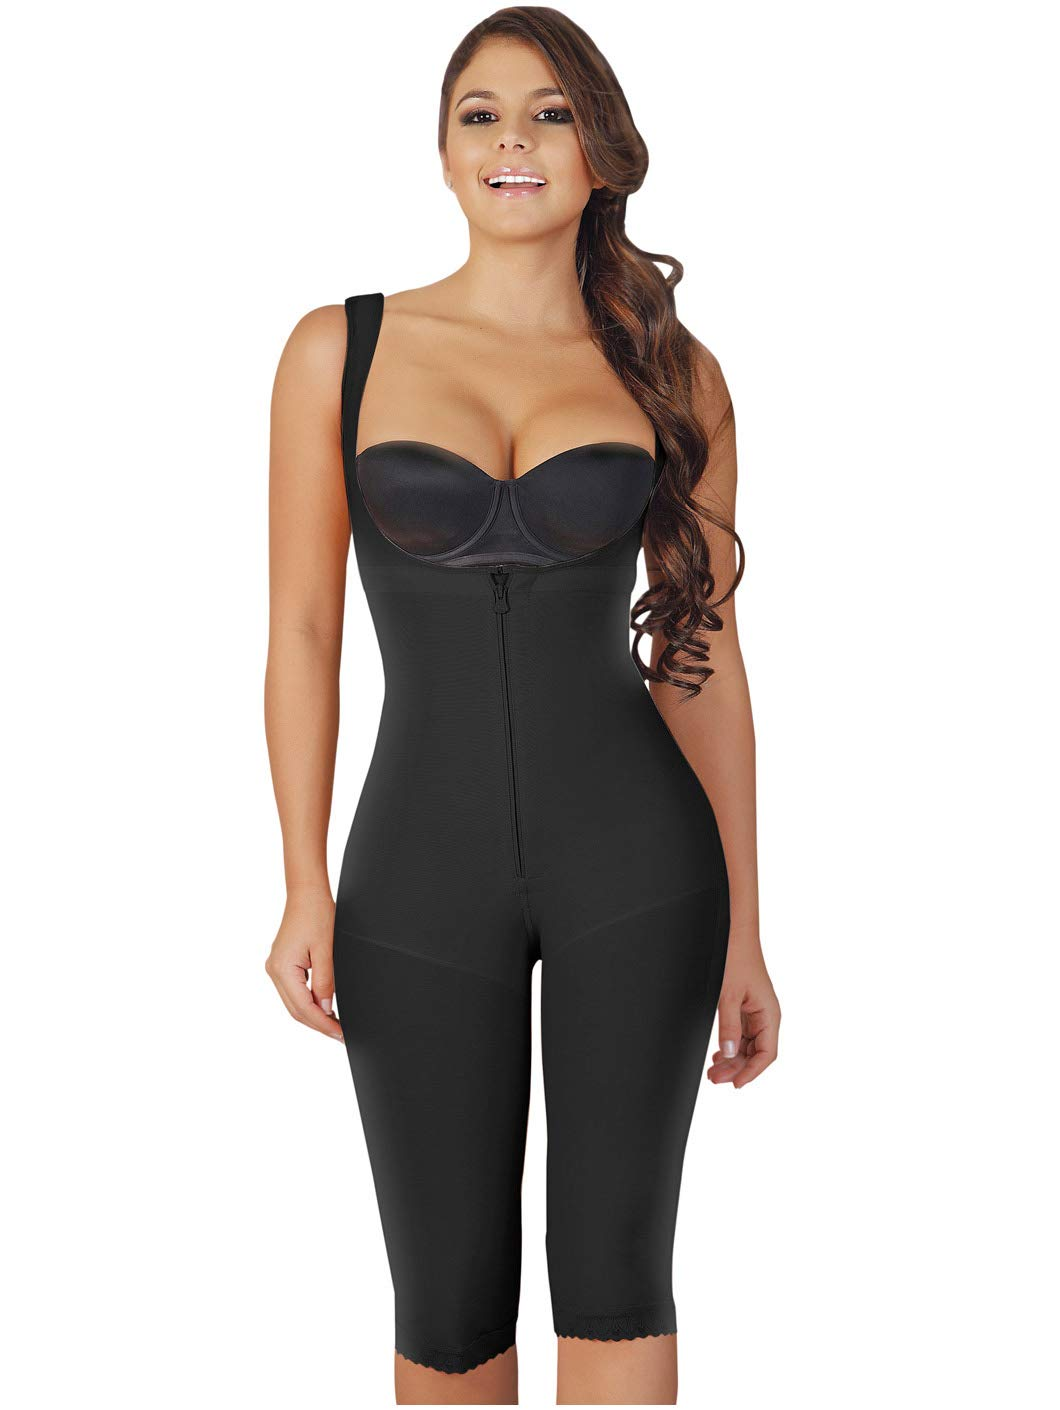 ad8ffd46e Galleon - Salome 0520 Women Post Surgery Full Body Shaper With Zipper Shapewear  Fajas Colombianas Reductoras Moldeadoras Completas Post-operatorias Black S